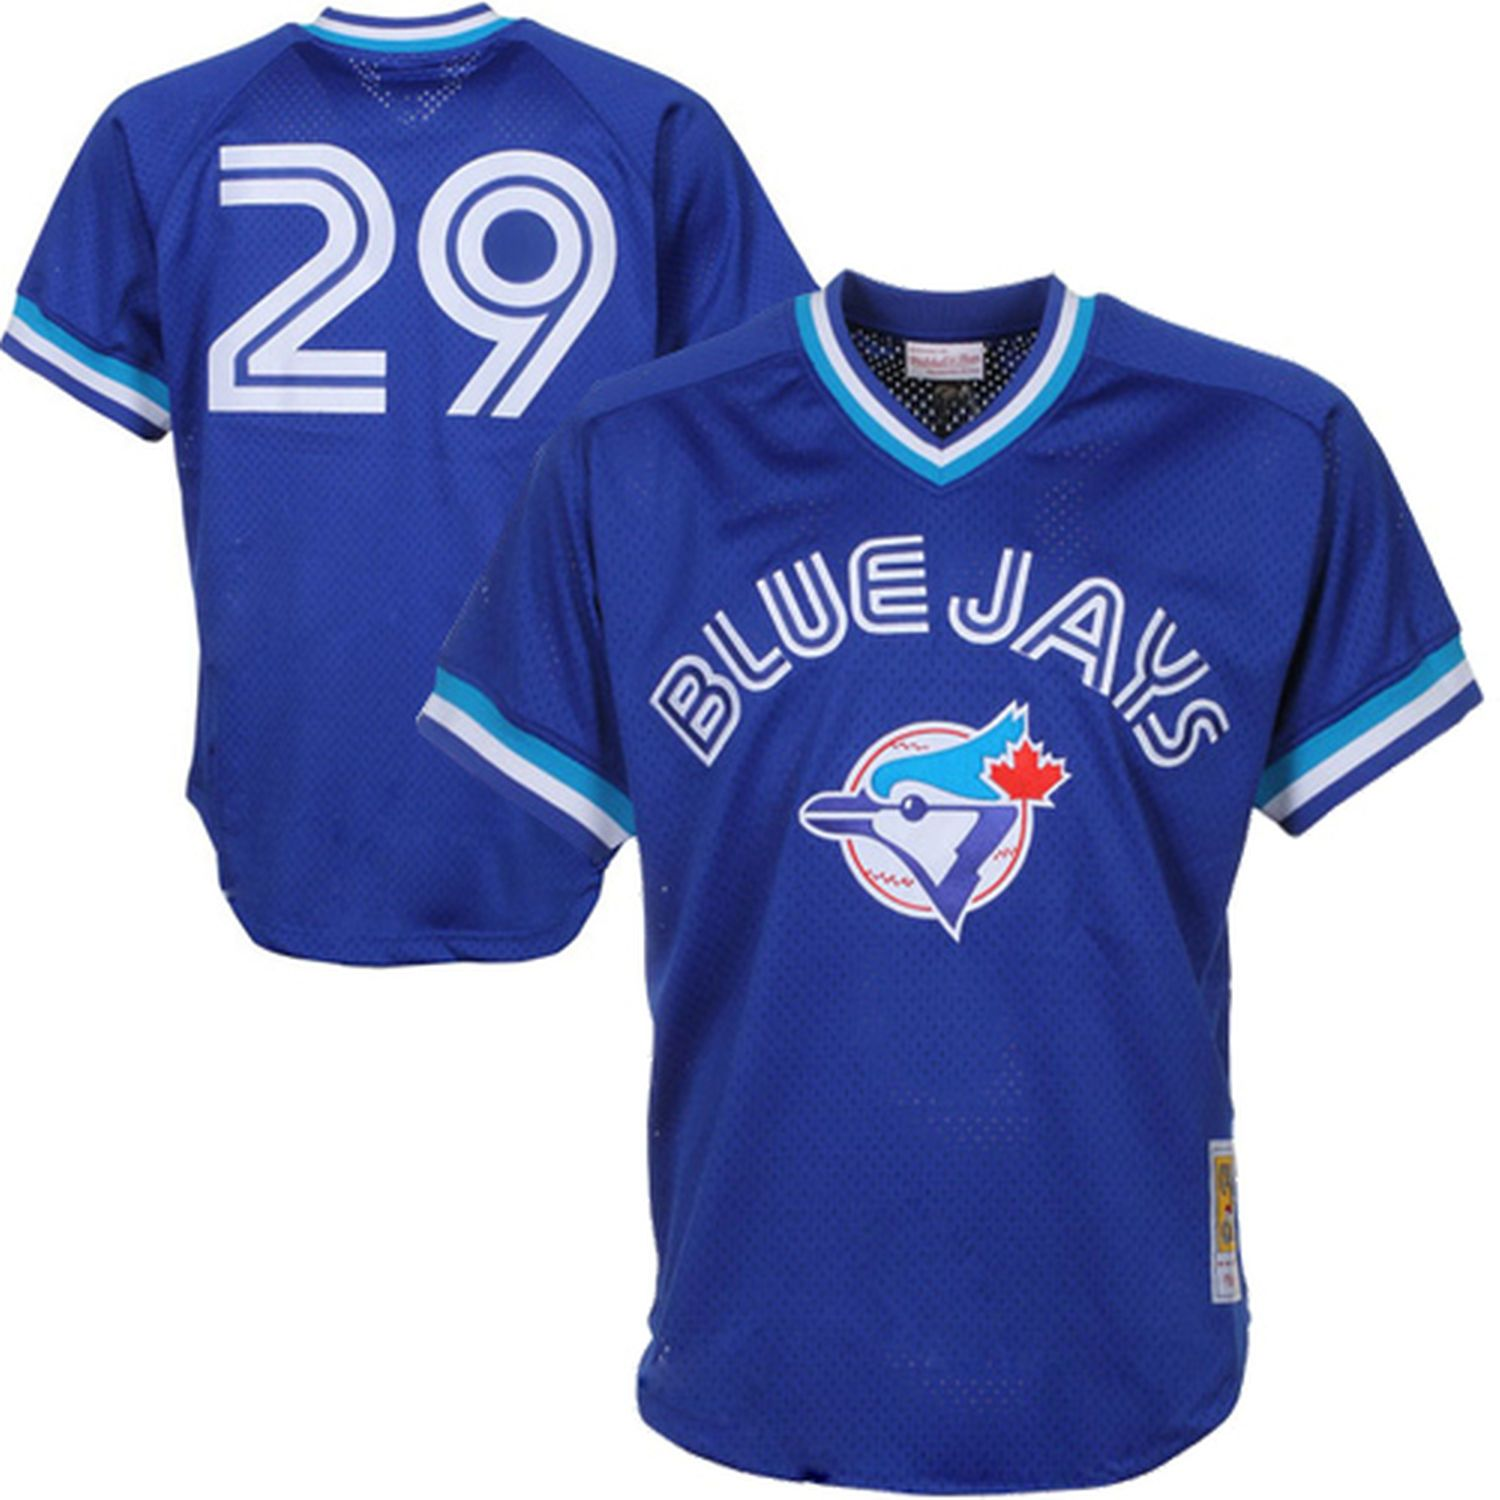 1007cb649b3 Joe Carter Toronto Blue Jays Mitchell   Ness 1993 Authentic Cooperstown  Collection Mesh Batting Practice Jersey - Royal